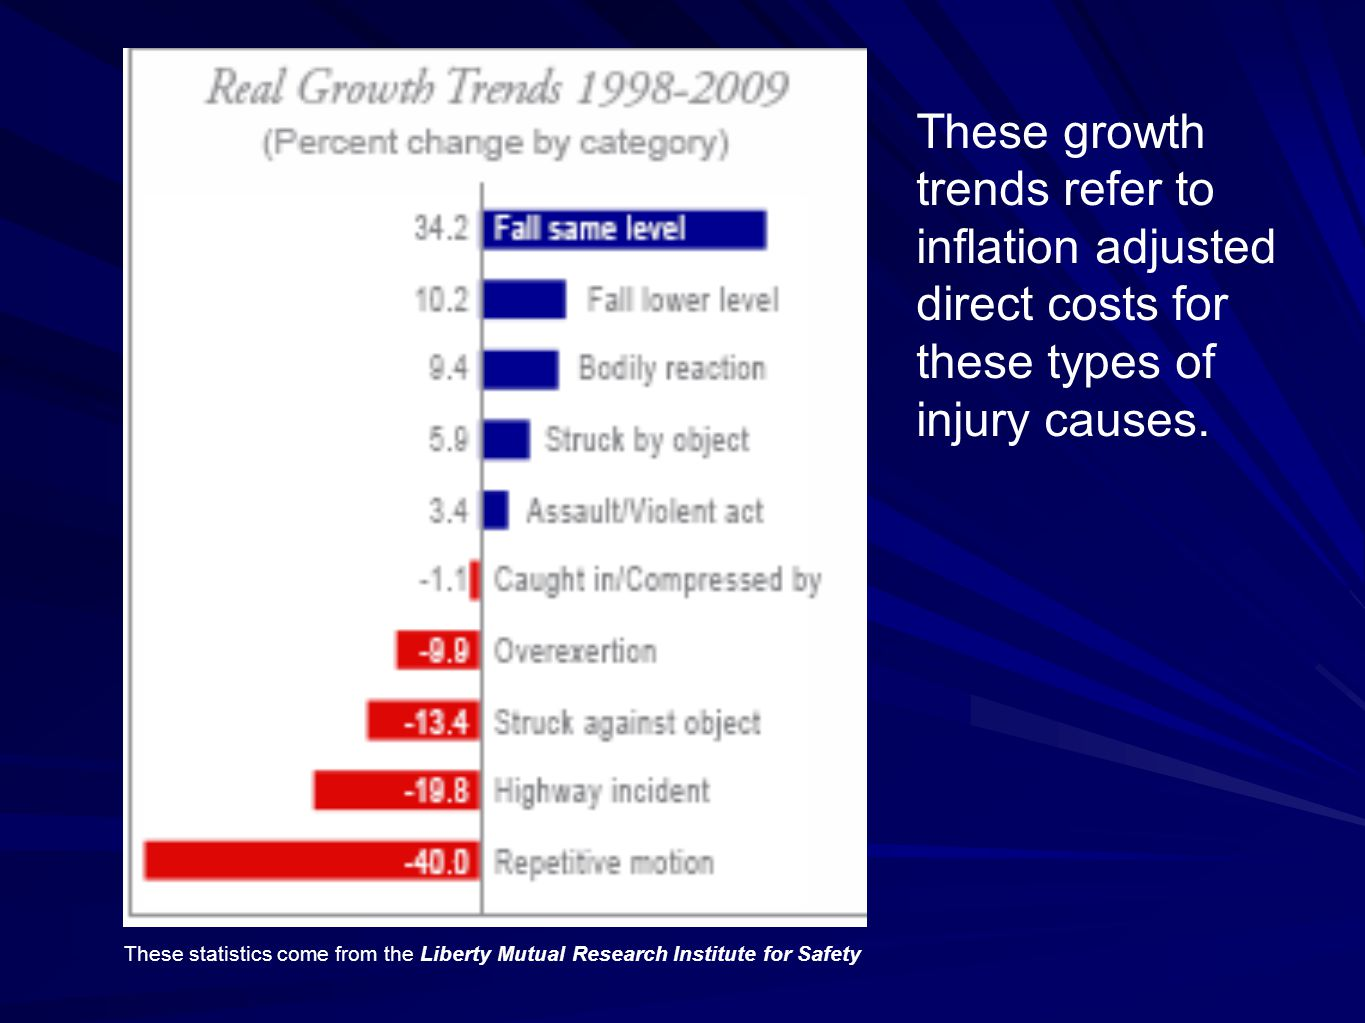 These growth trends refer to inflation adjusted direct costs for these types of injury causes.